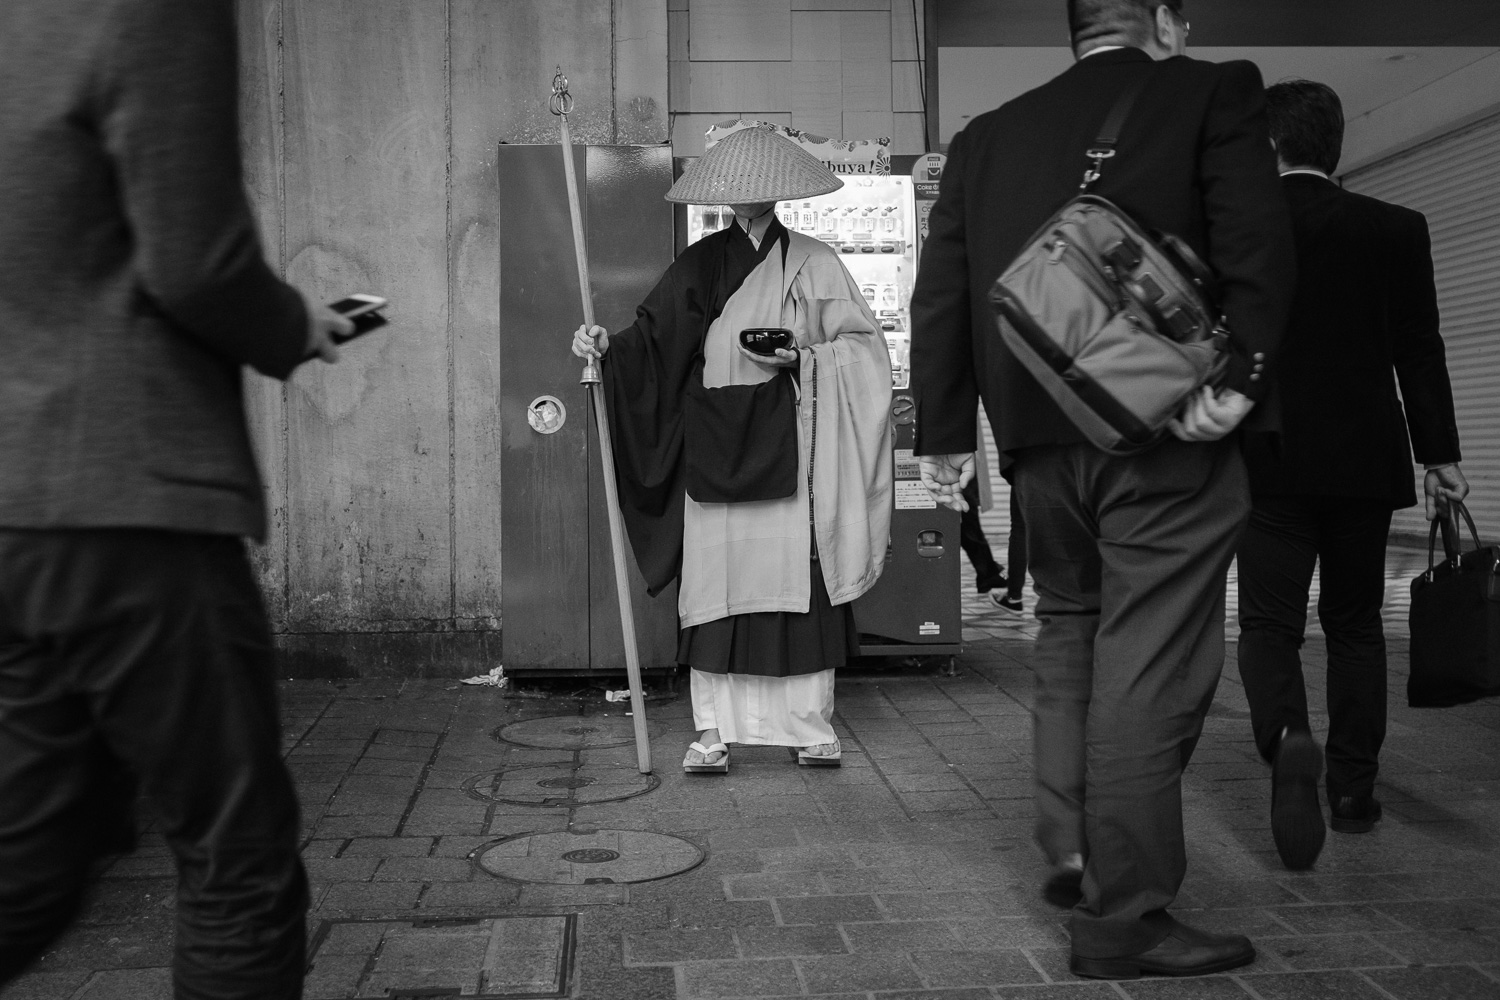 A Buddhist monk waits for alms during rush hour in Shibuya, Tokyo , Japan